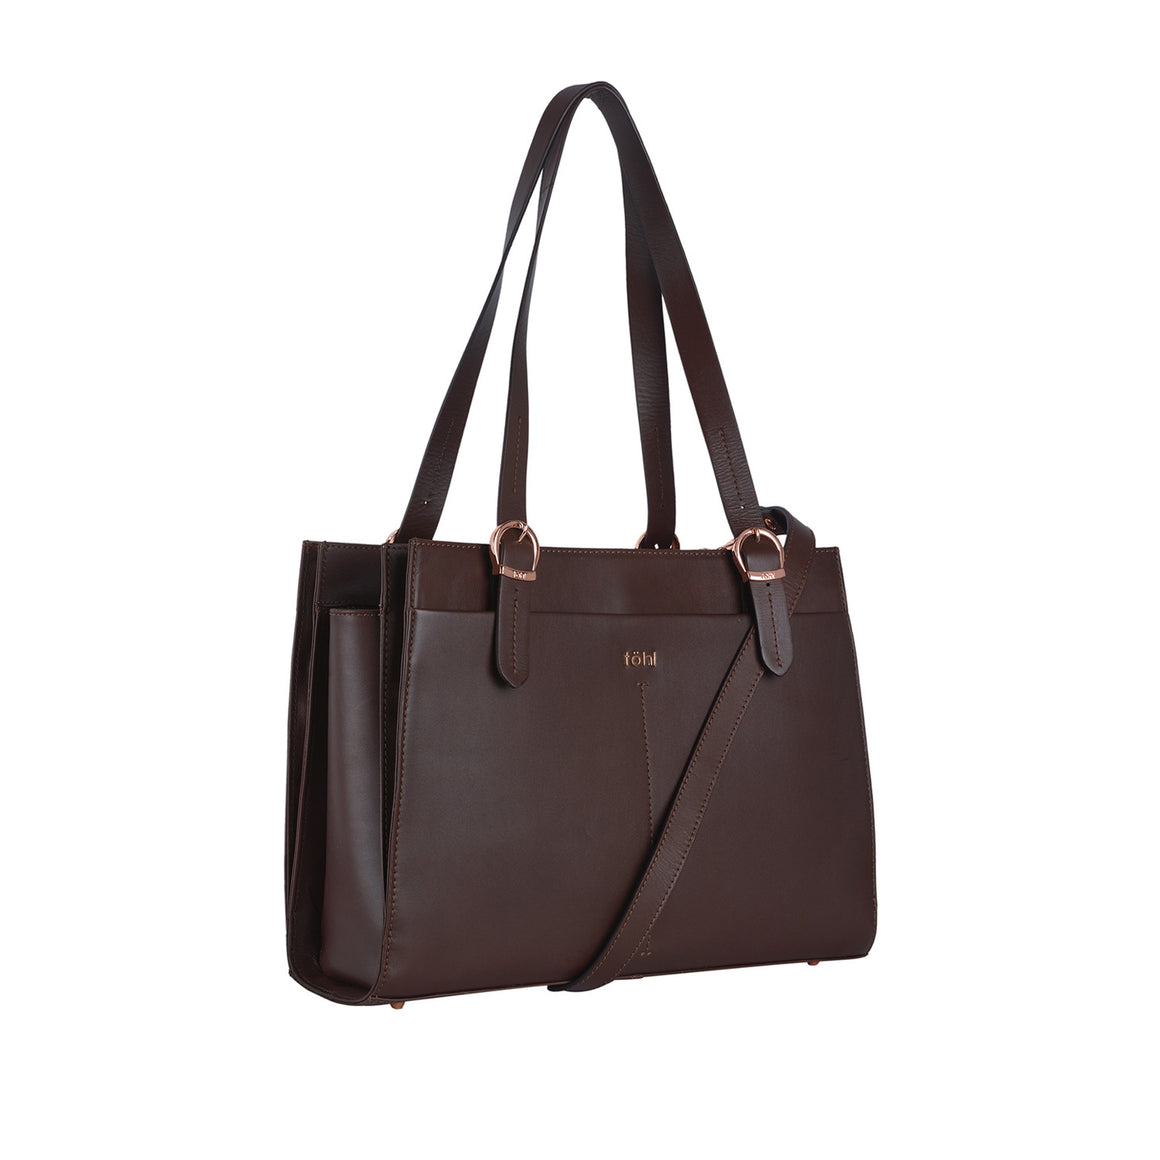 SB 0018 - TOHL TRINITY WOMEN'S DAY BAG - CHOCO